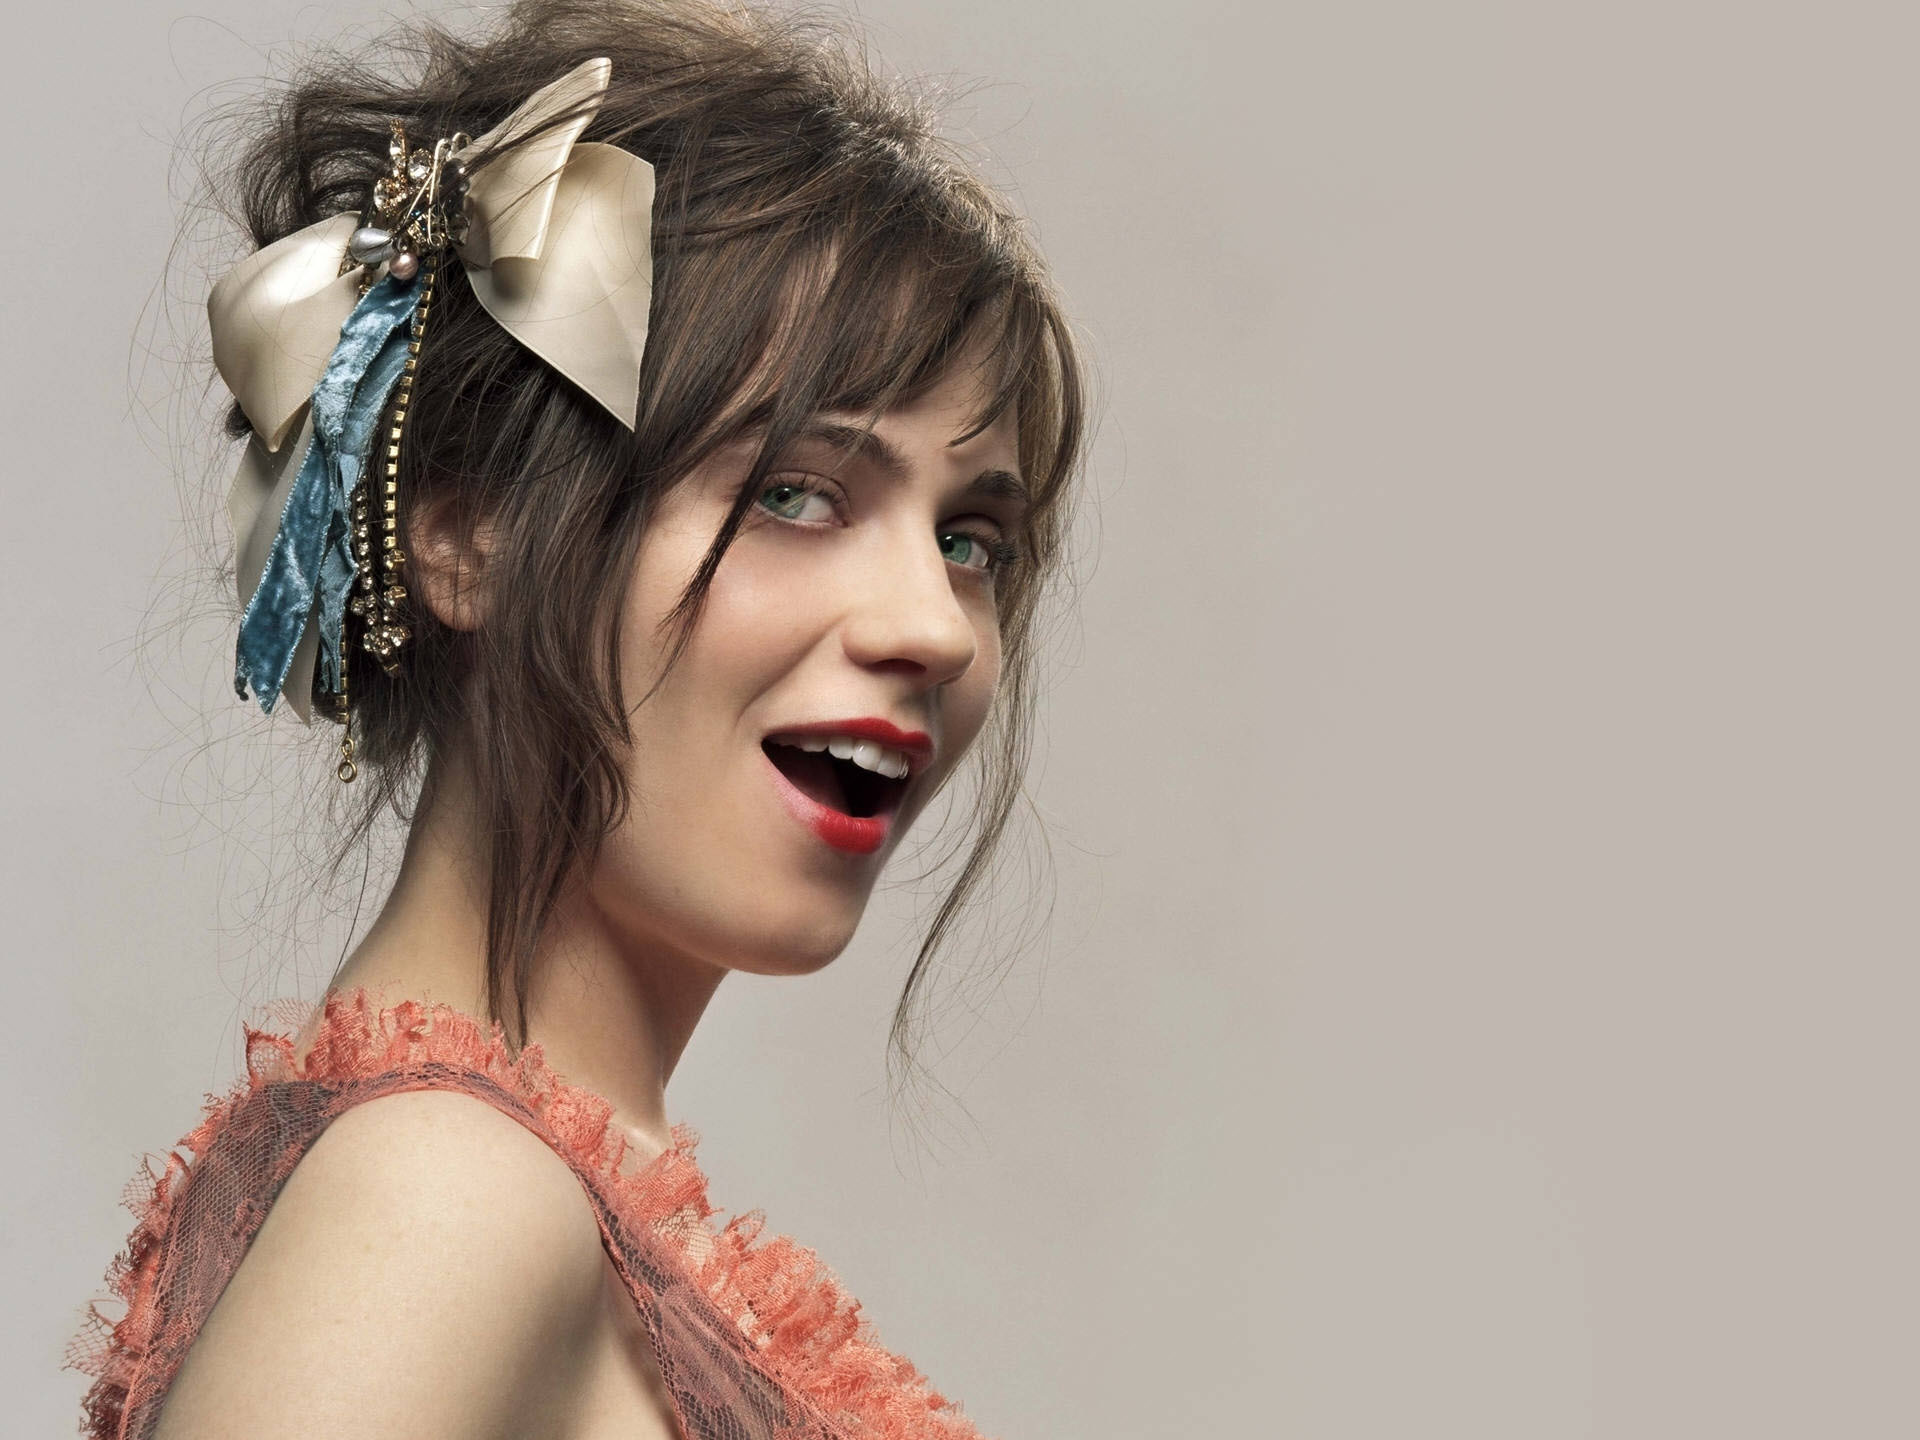 woman models zooey deschanel